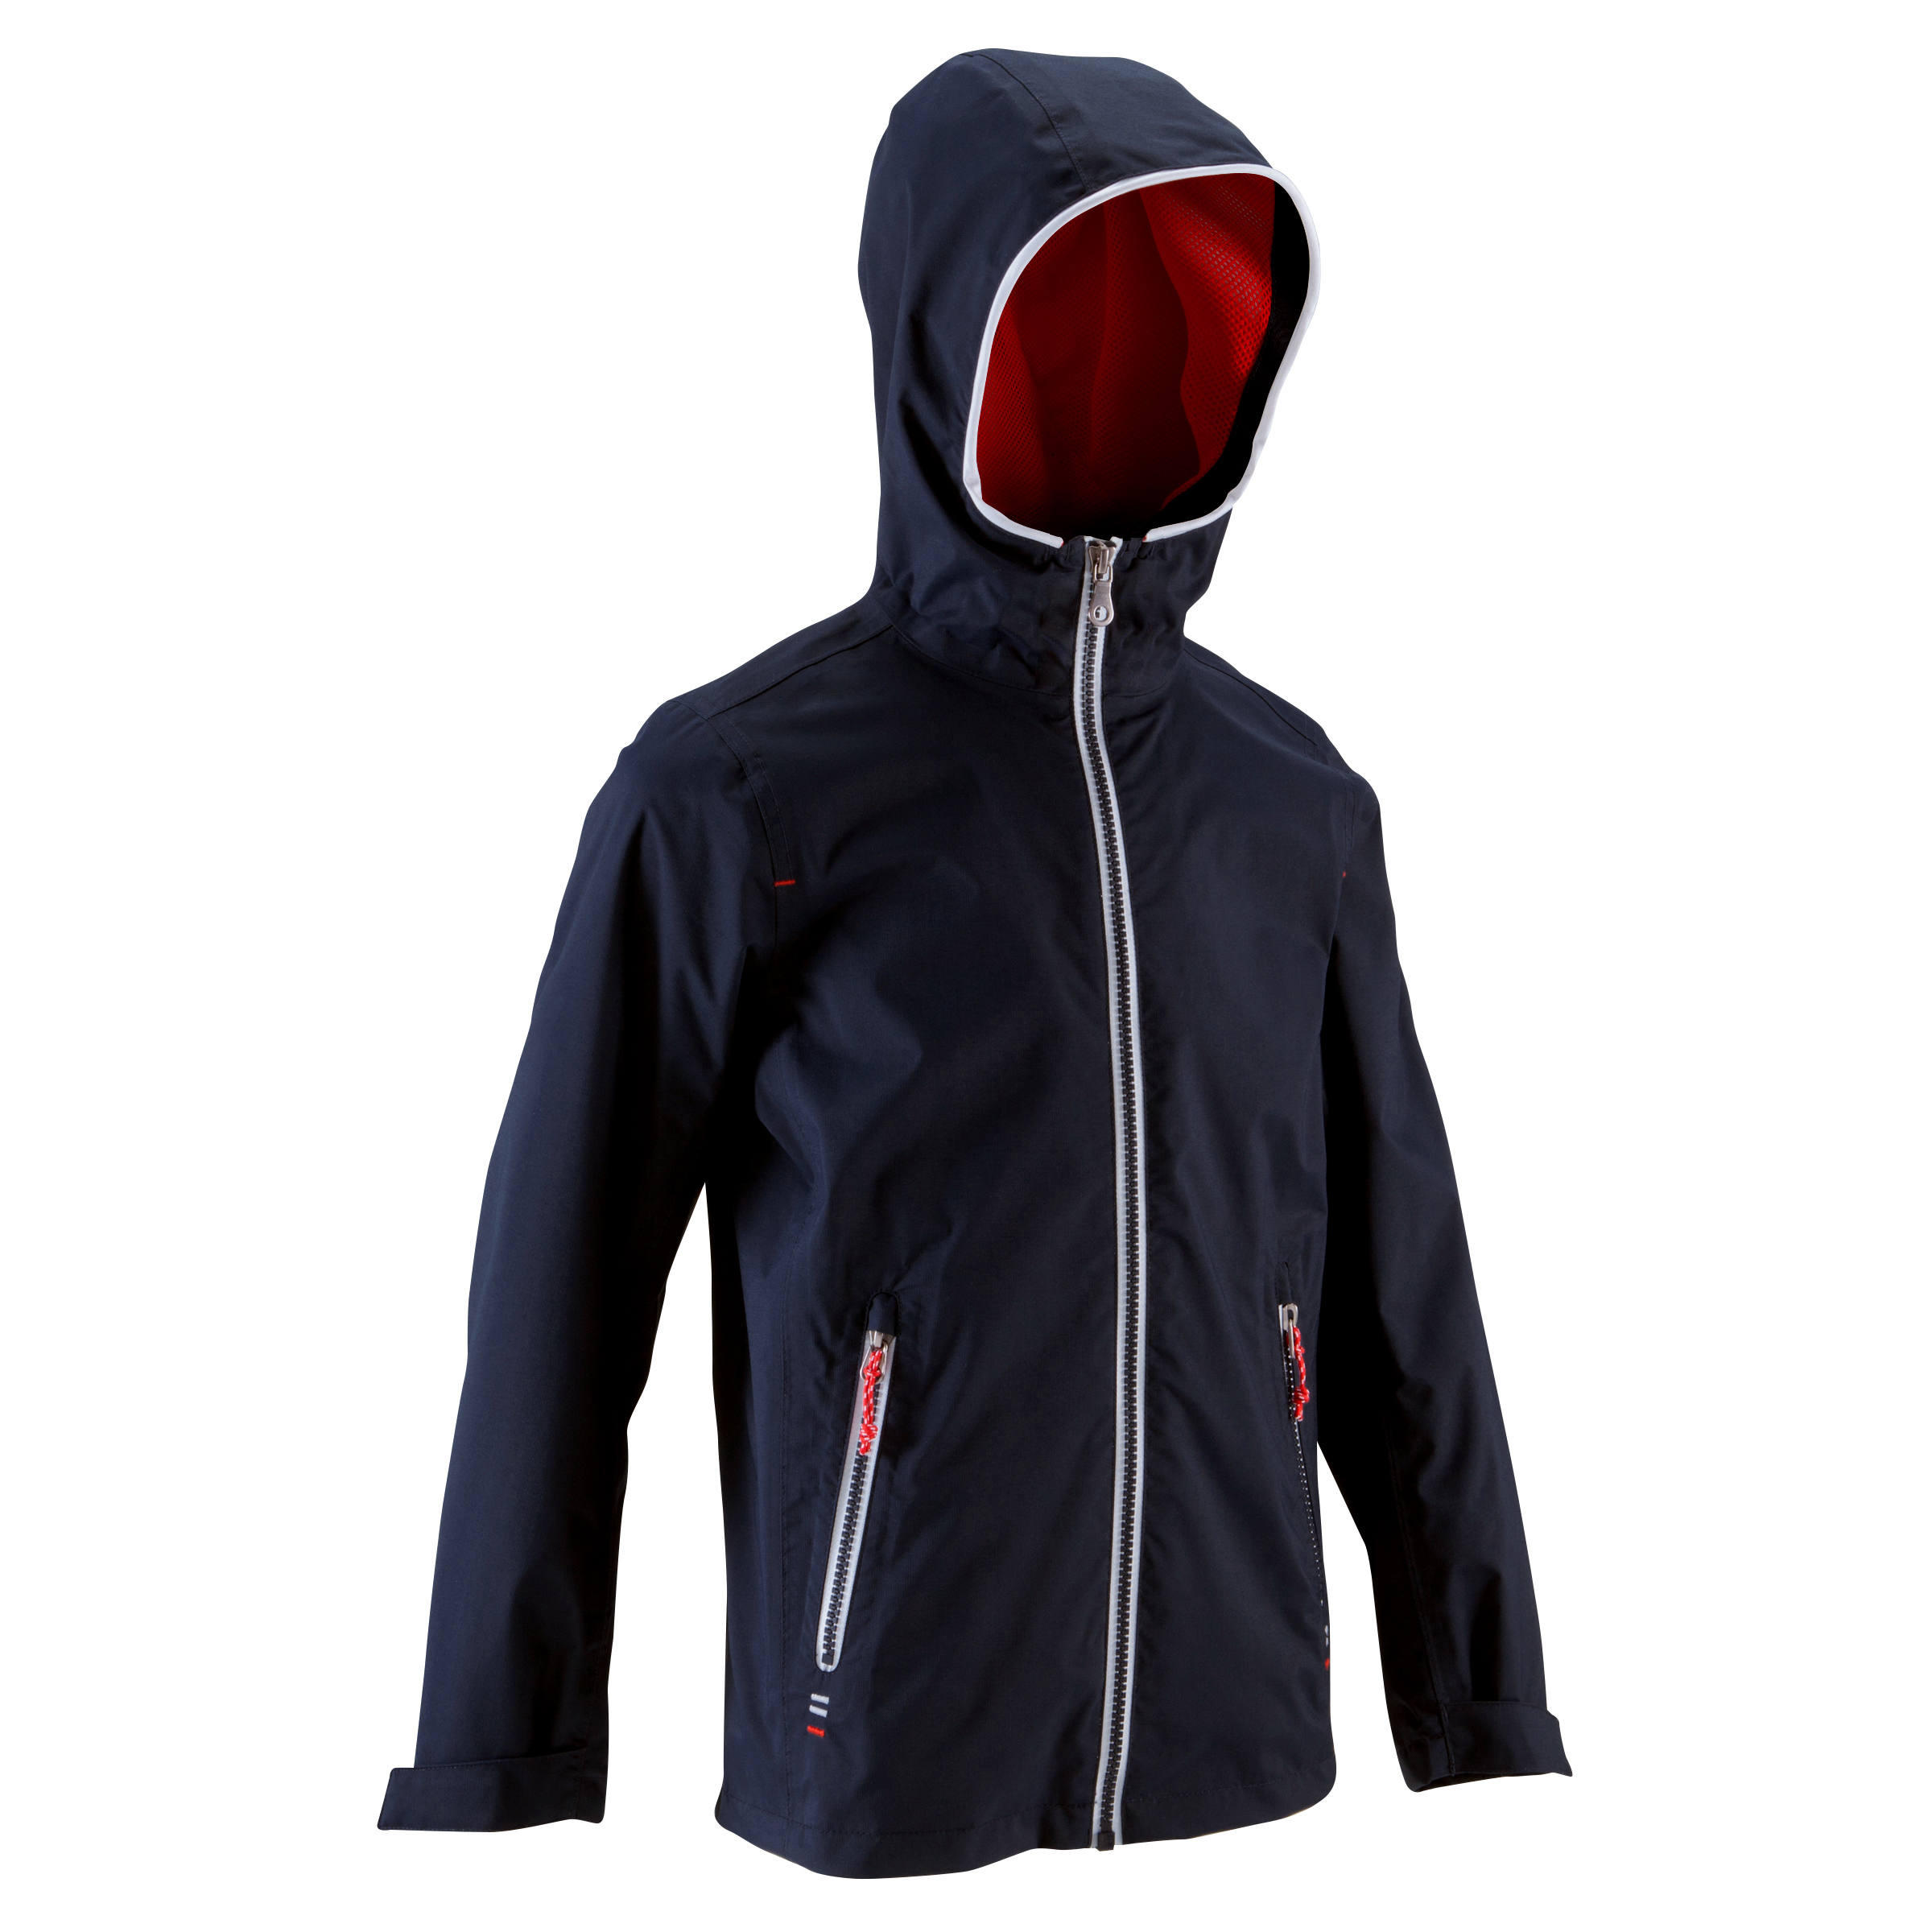 100 Children's Sailing Rain Coat - Dark Blue